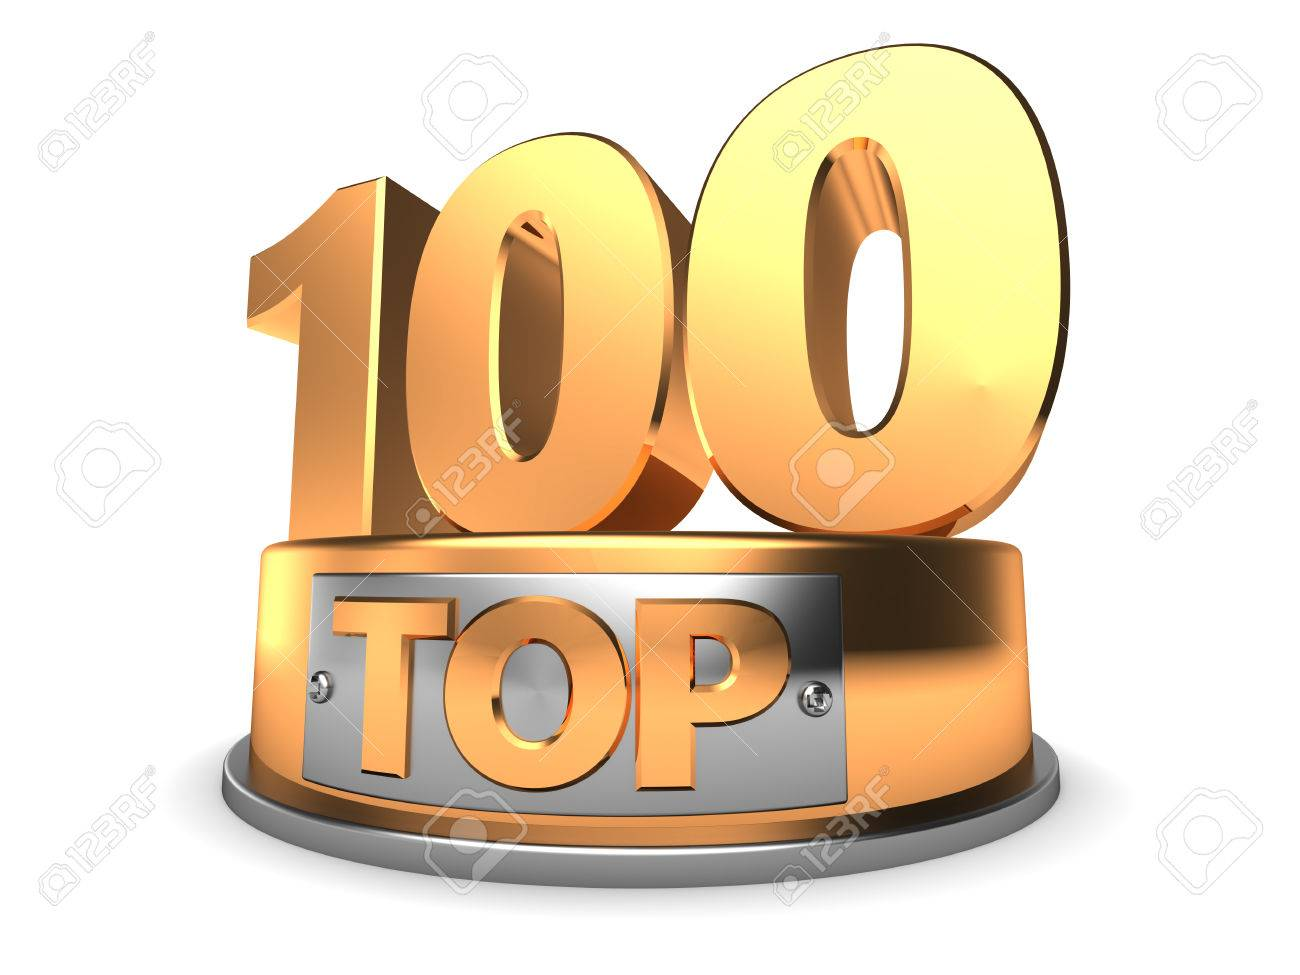 3d illustration of top 100 symbol over white background stock photo 3d illustration of top 100 symbol over white background stock illustration 61547196 buycottarizona Image collections